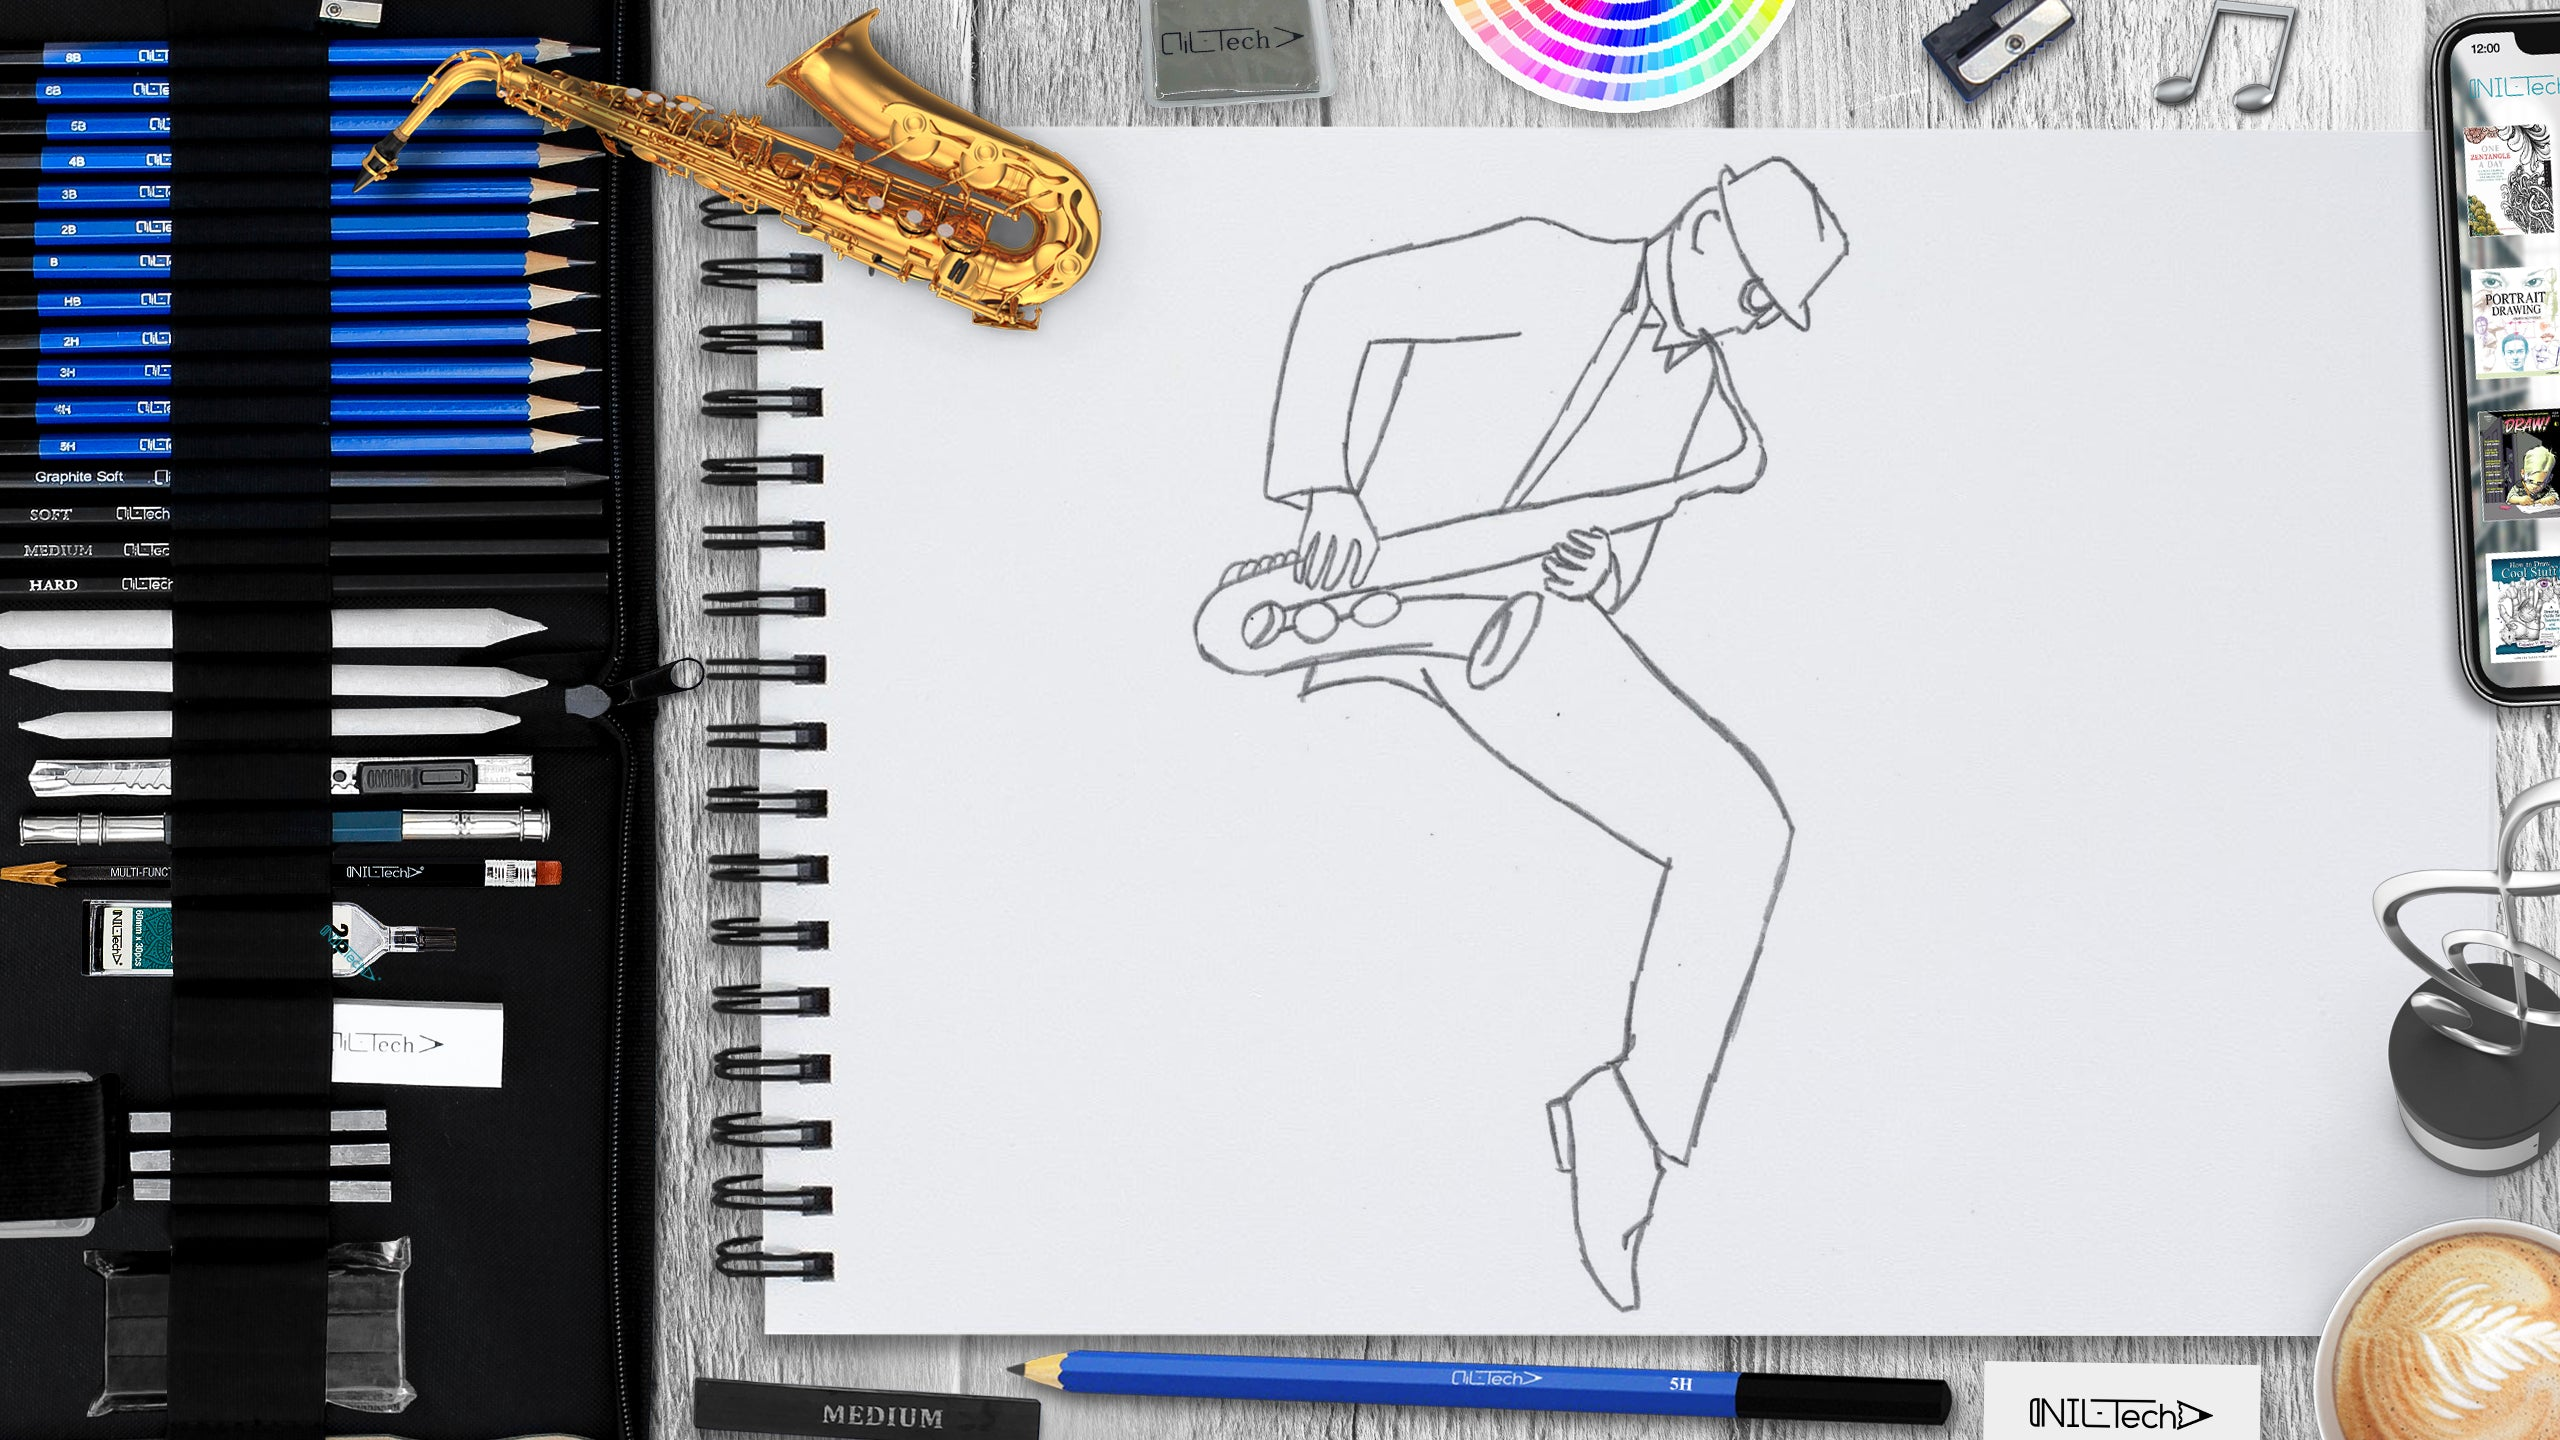 saxophonist step by step drawing tutorial